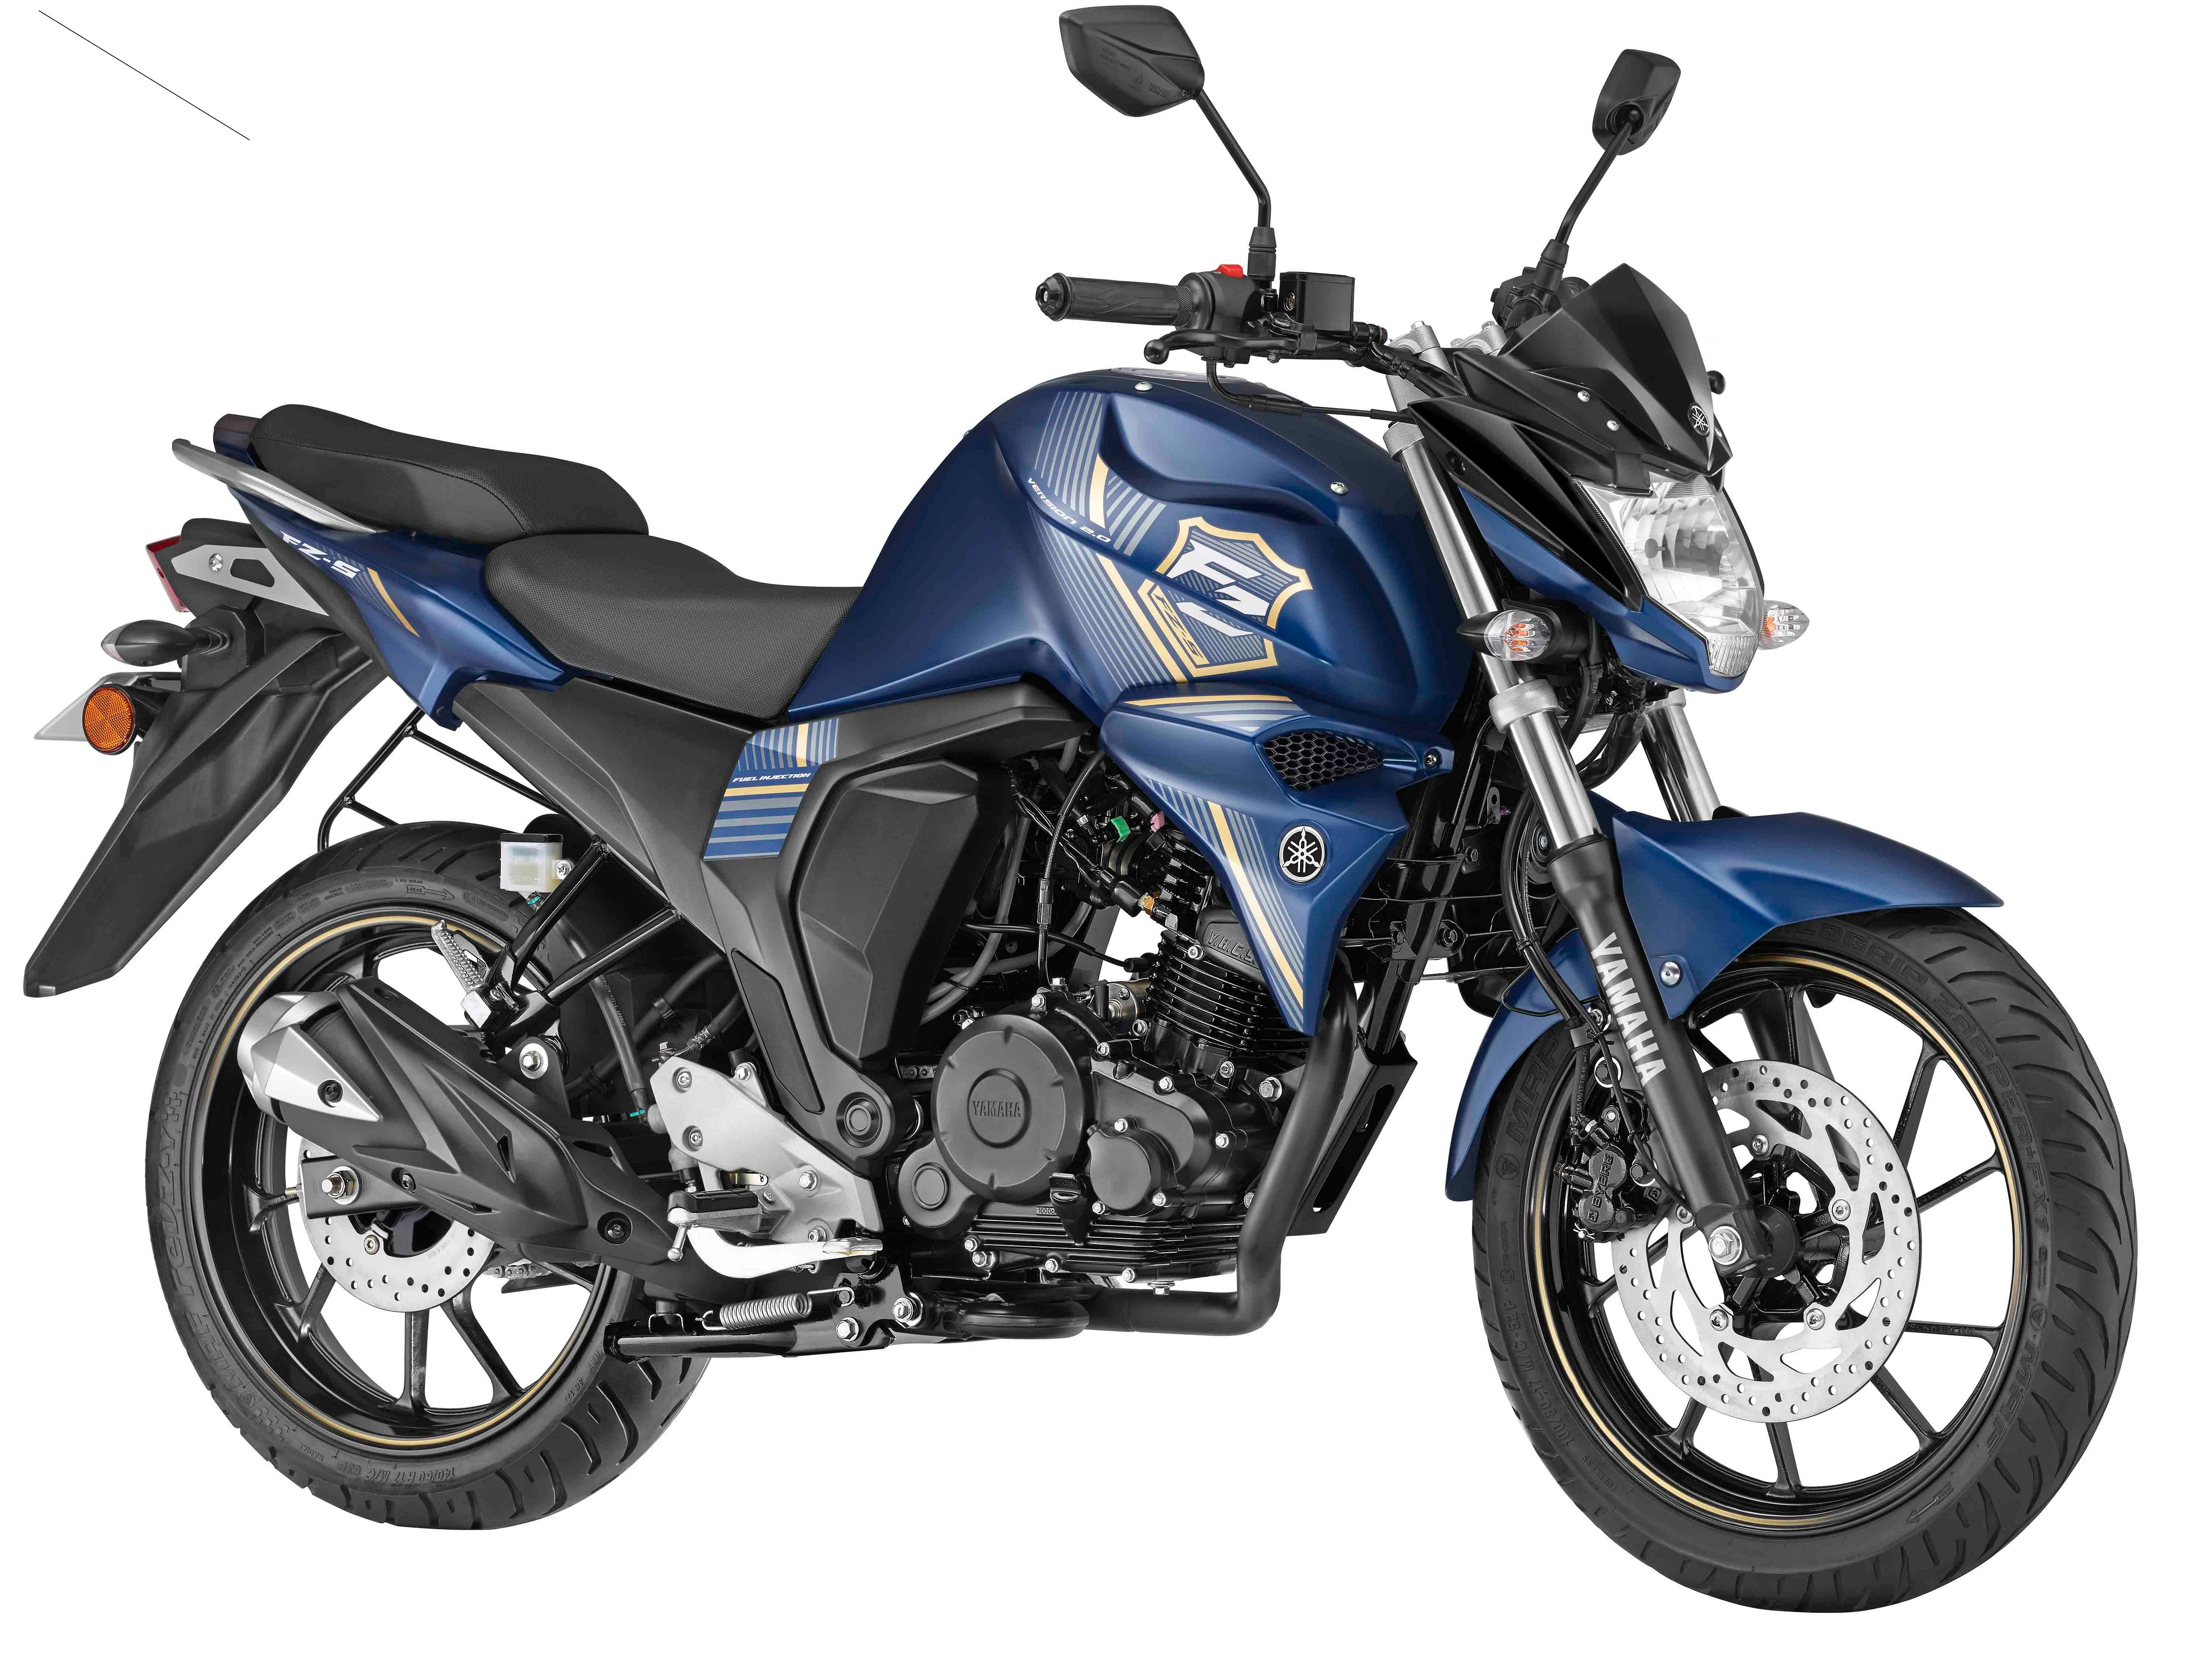 New Yamaha FZS FI with Rear Disc Brake Launched